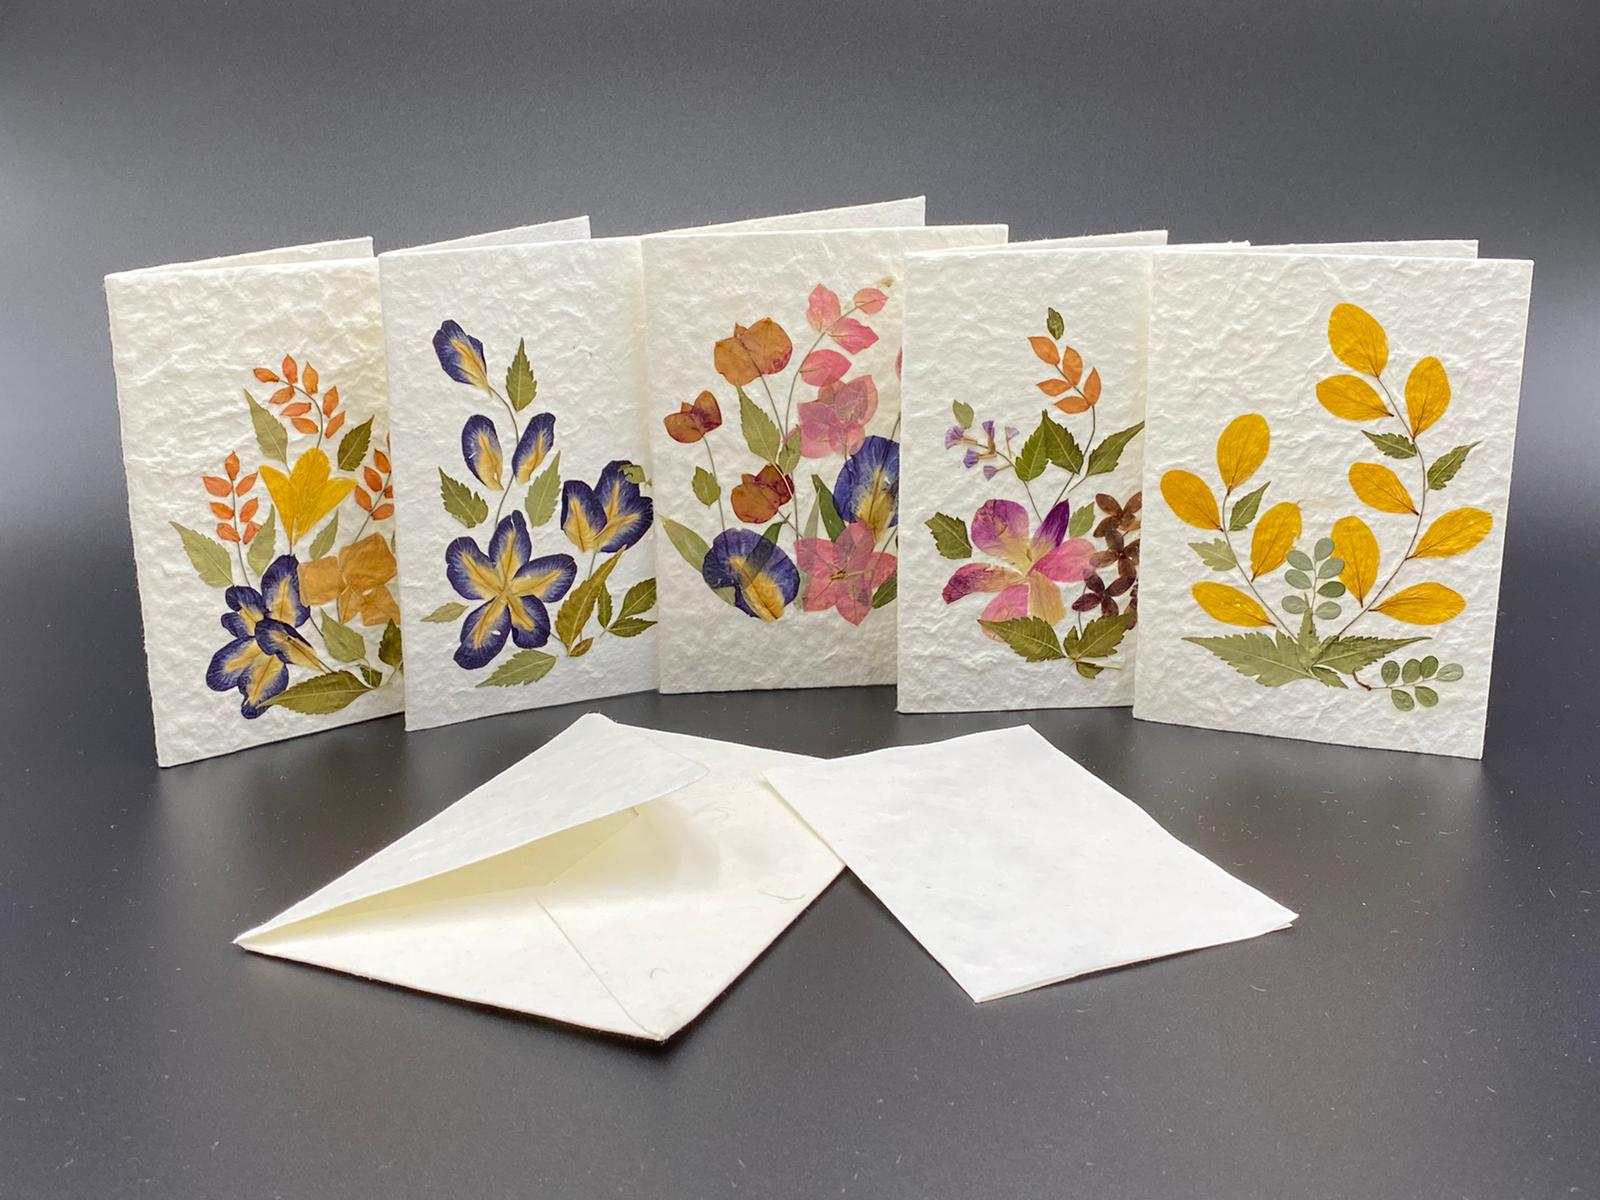 Mulberry Paper Notecards w/ Dried Flowers